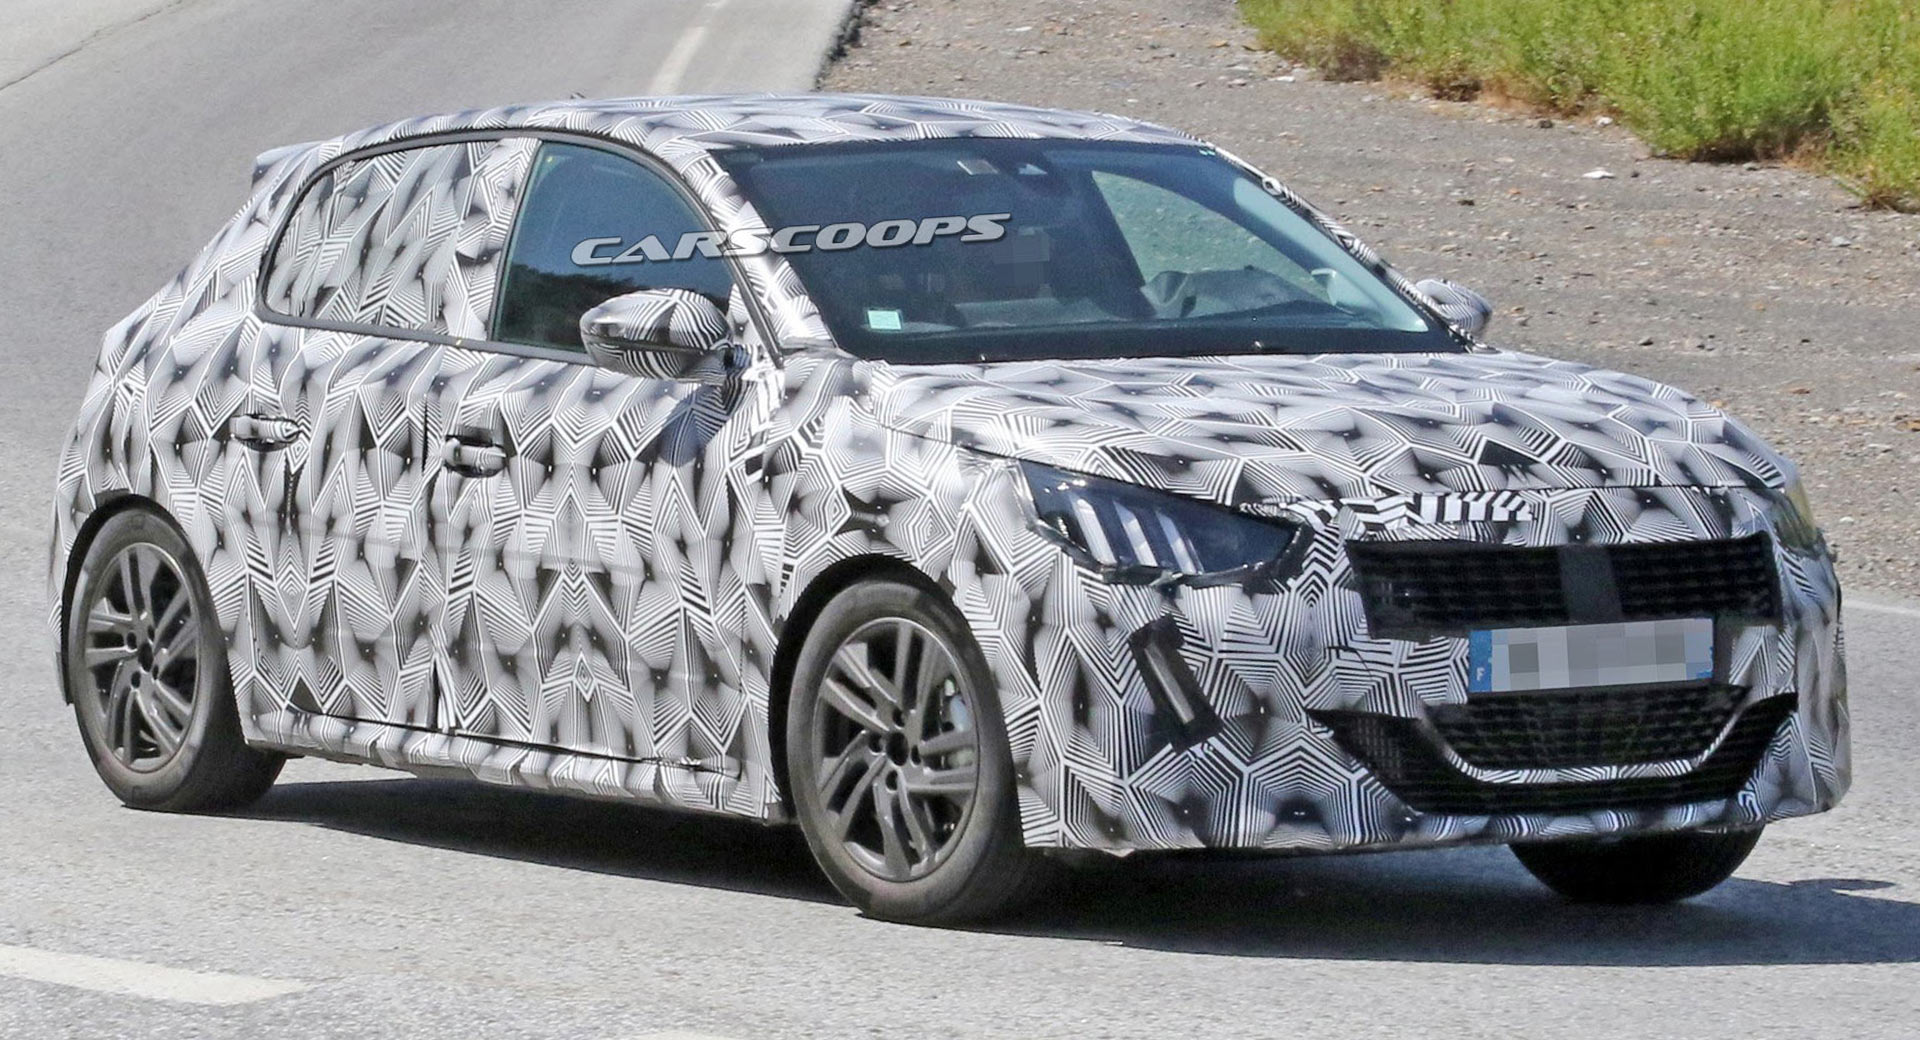 2019 peugeot 208 gti spied with a stylish new design carscoops. Black Bedroom Furniture Sets. Home Design Ideas